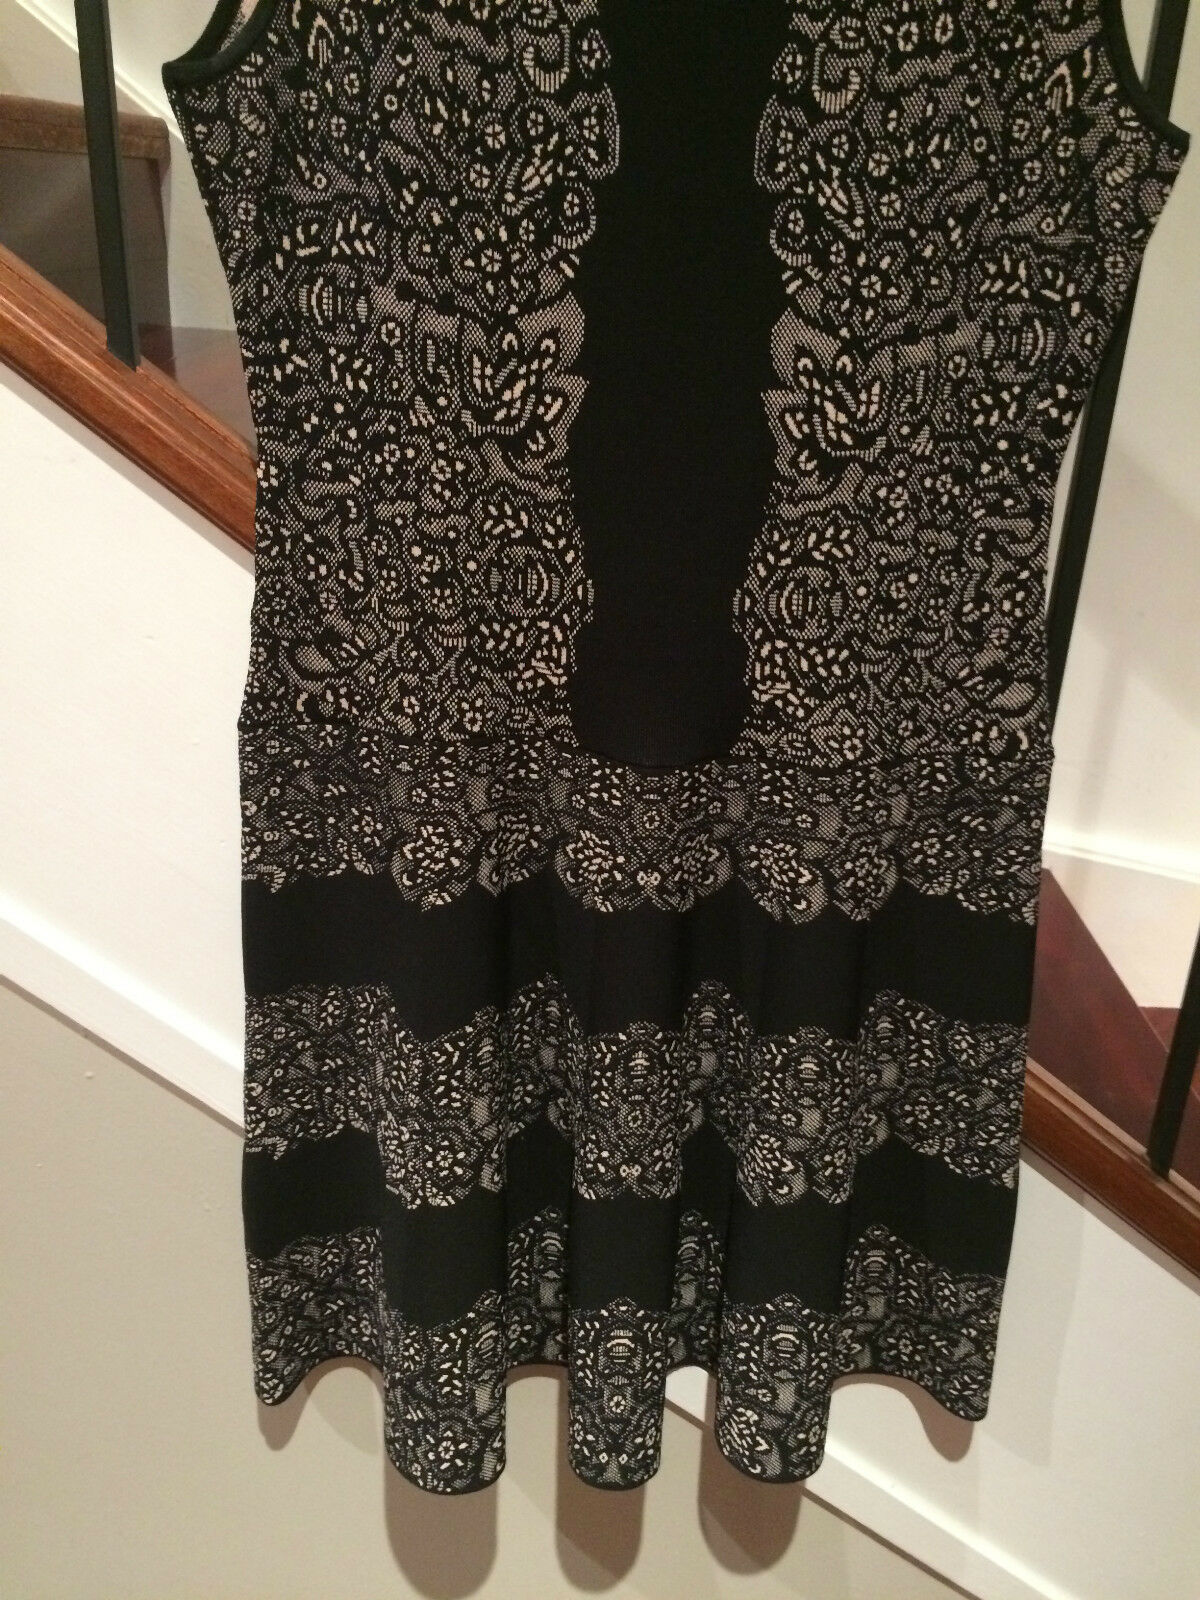 BCBG MAXAZRIA LADIES DRESS  SIZE LARGE  WORN ONCE ONCE ONCE  GREAT CONDITION  500+ bfff40